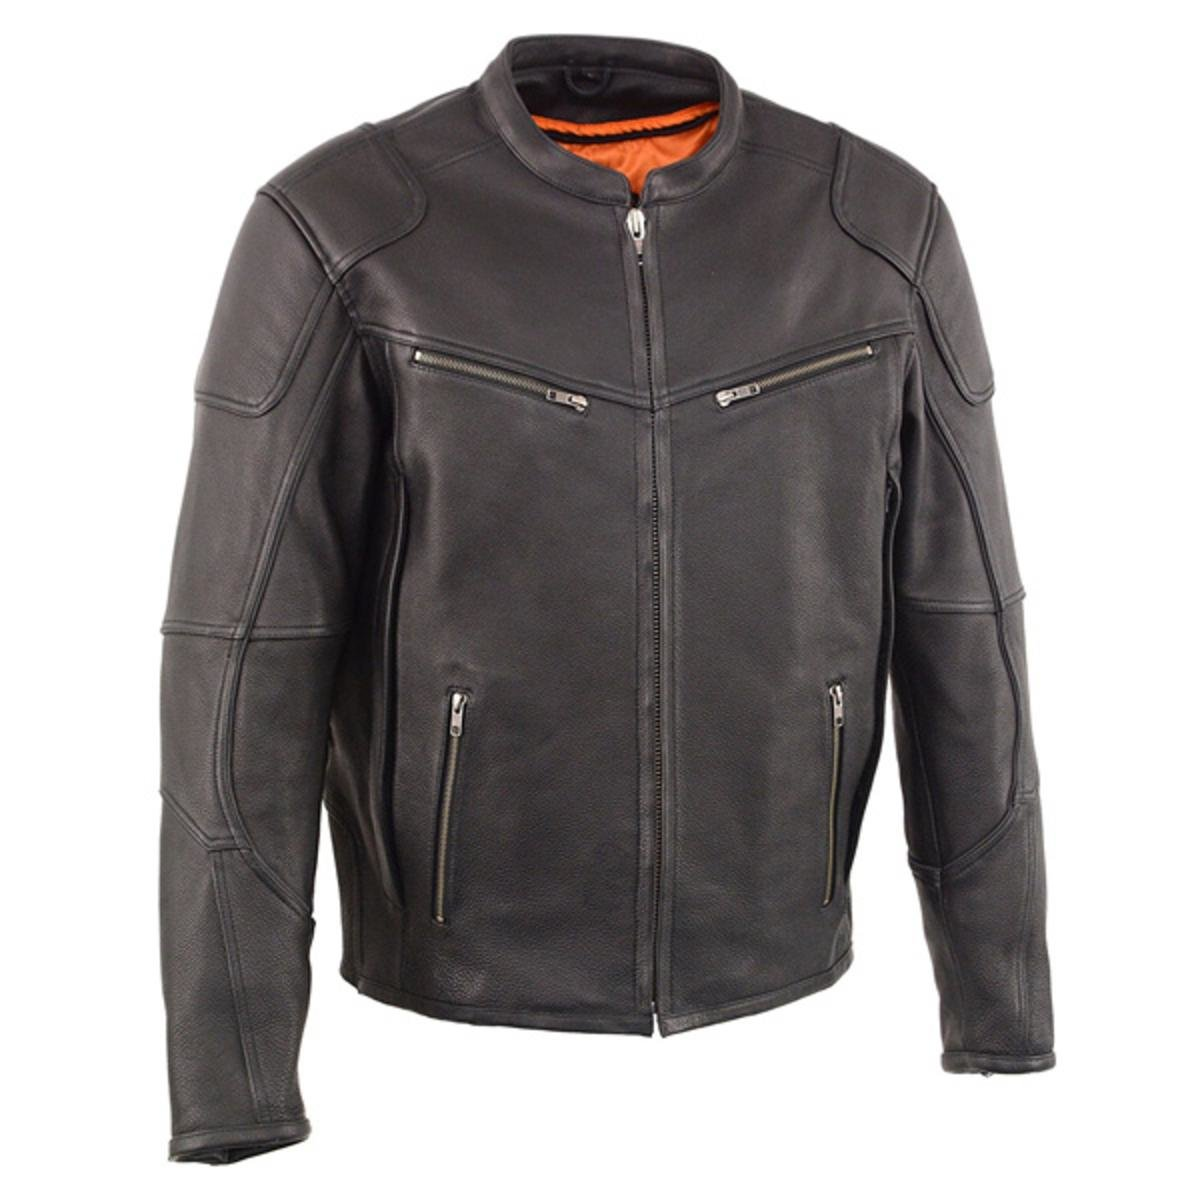 7602312242cb Milwaukee Leather Men s Vented Scooter Jacket with Cool Technology - The  Warming Store